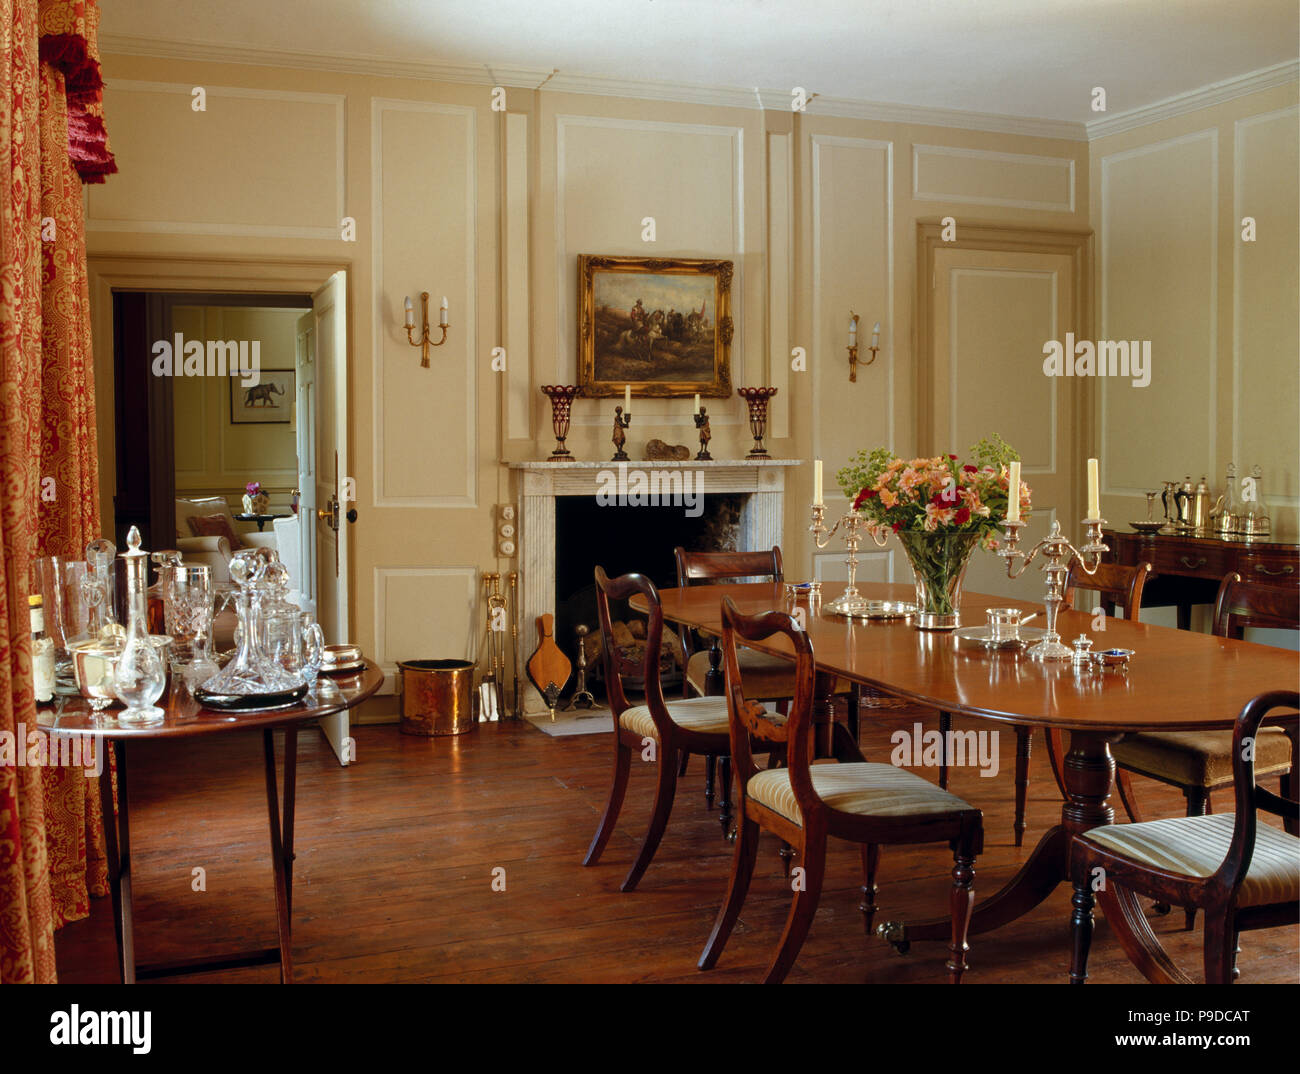 Regency Table And Chairs In Cream Panelled Dining Room With Wooden Flooring And Glasses And Decanters On Side Table Stock Photo Alamy